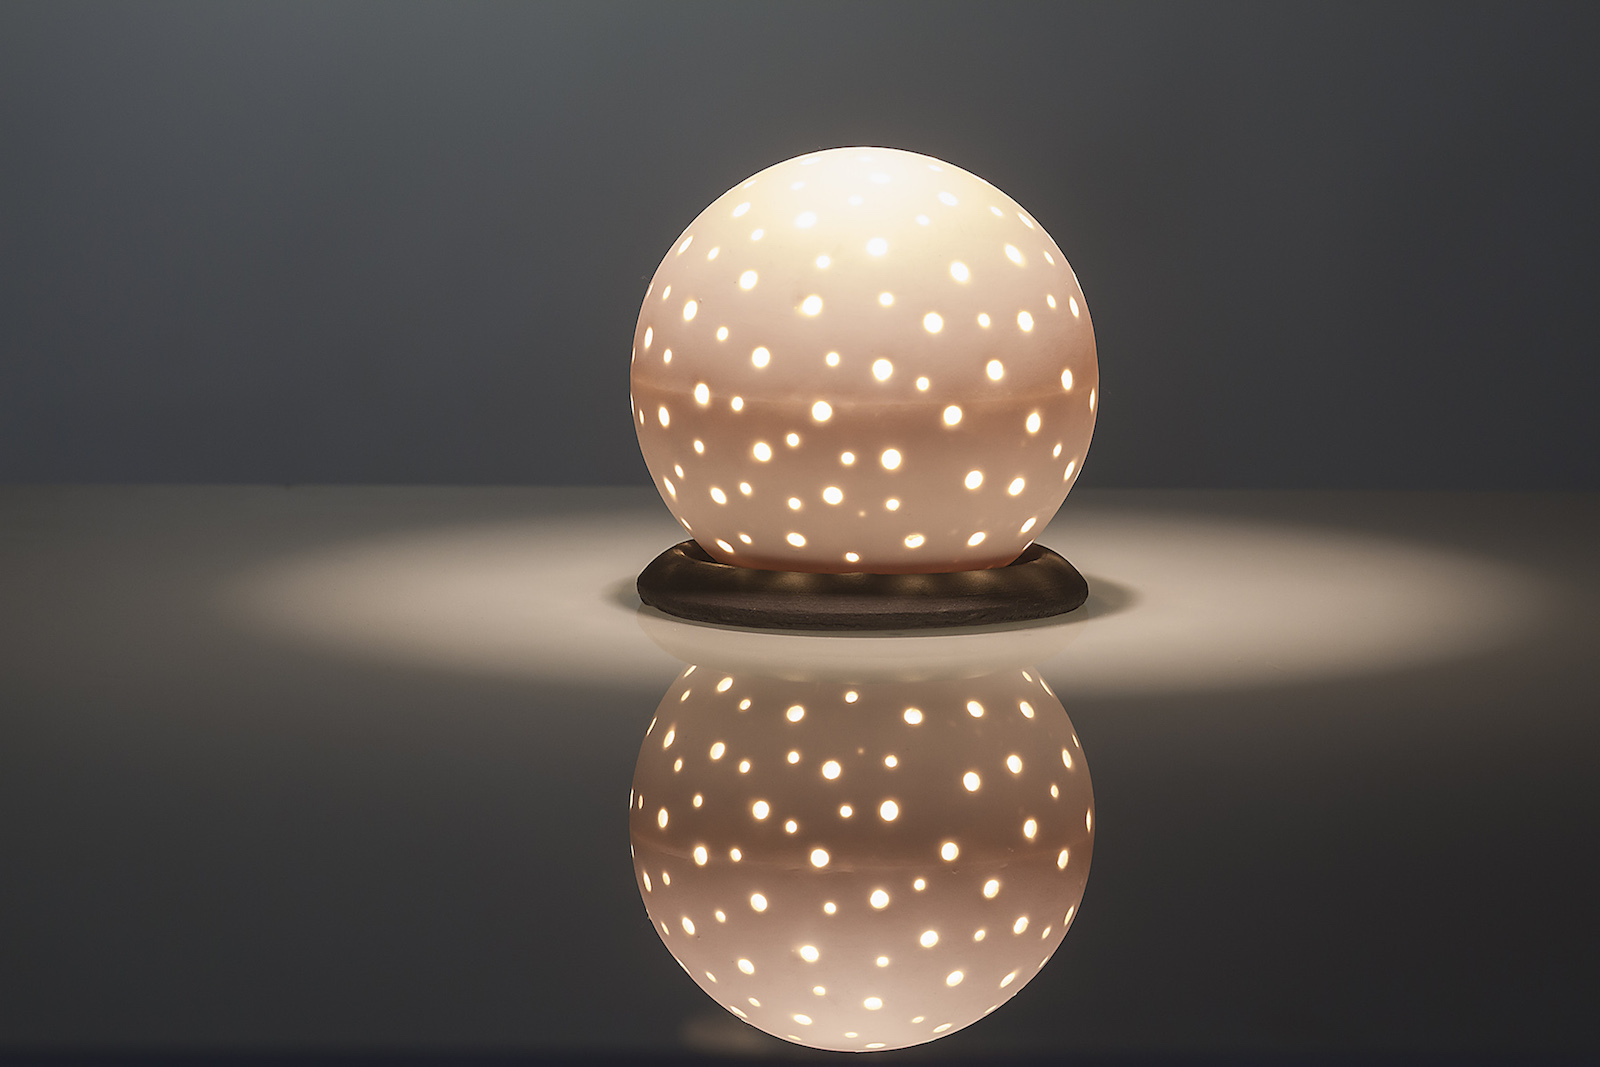 Perforated porcelain globe shaped table lamp